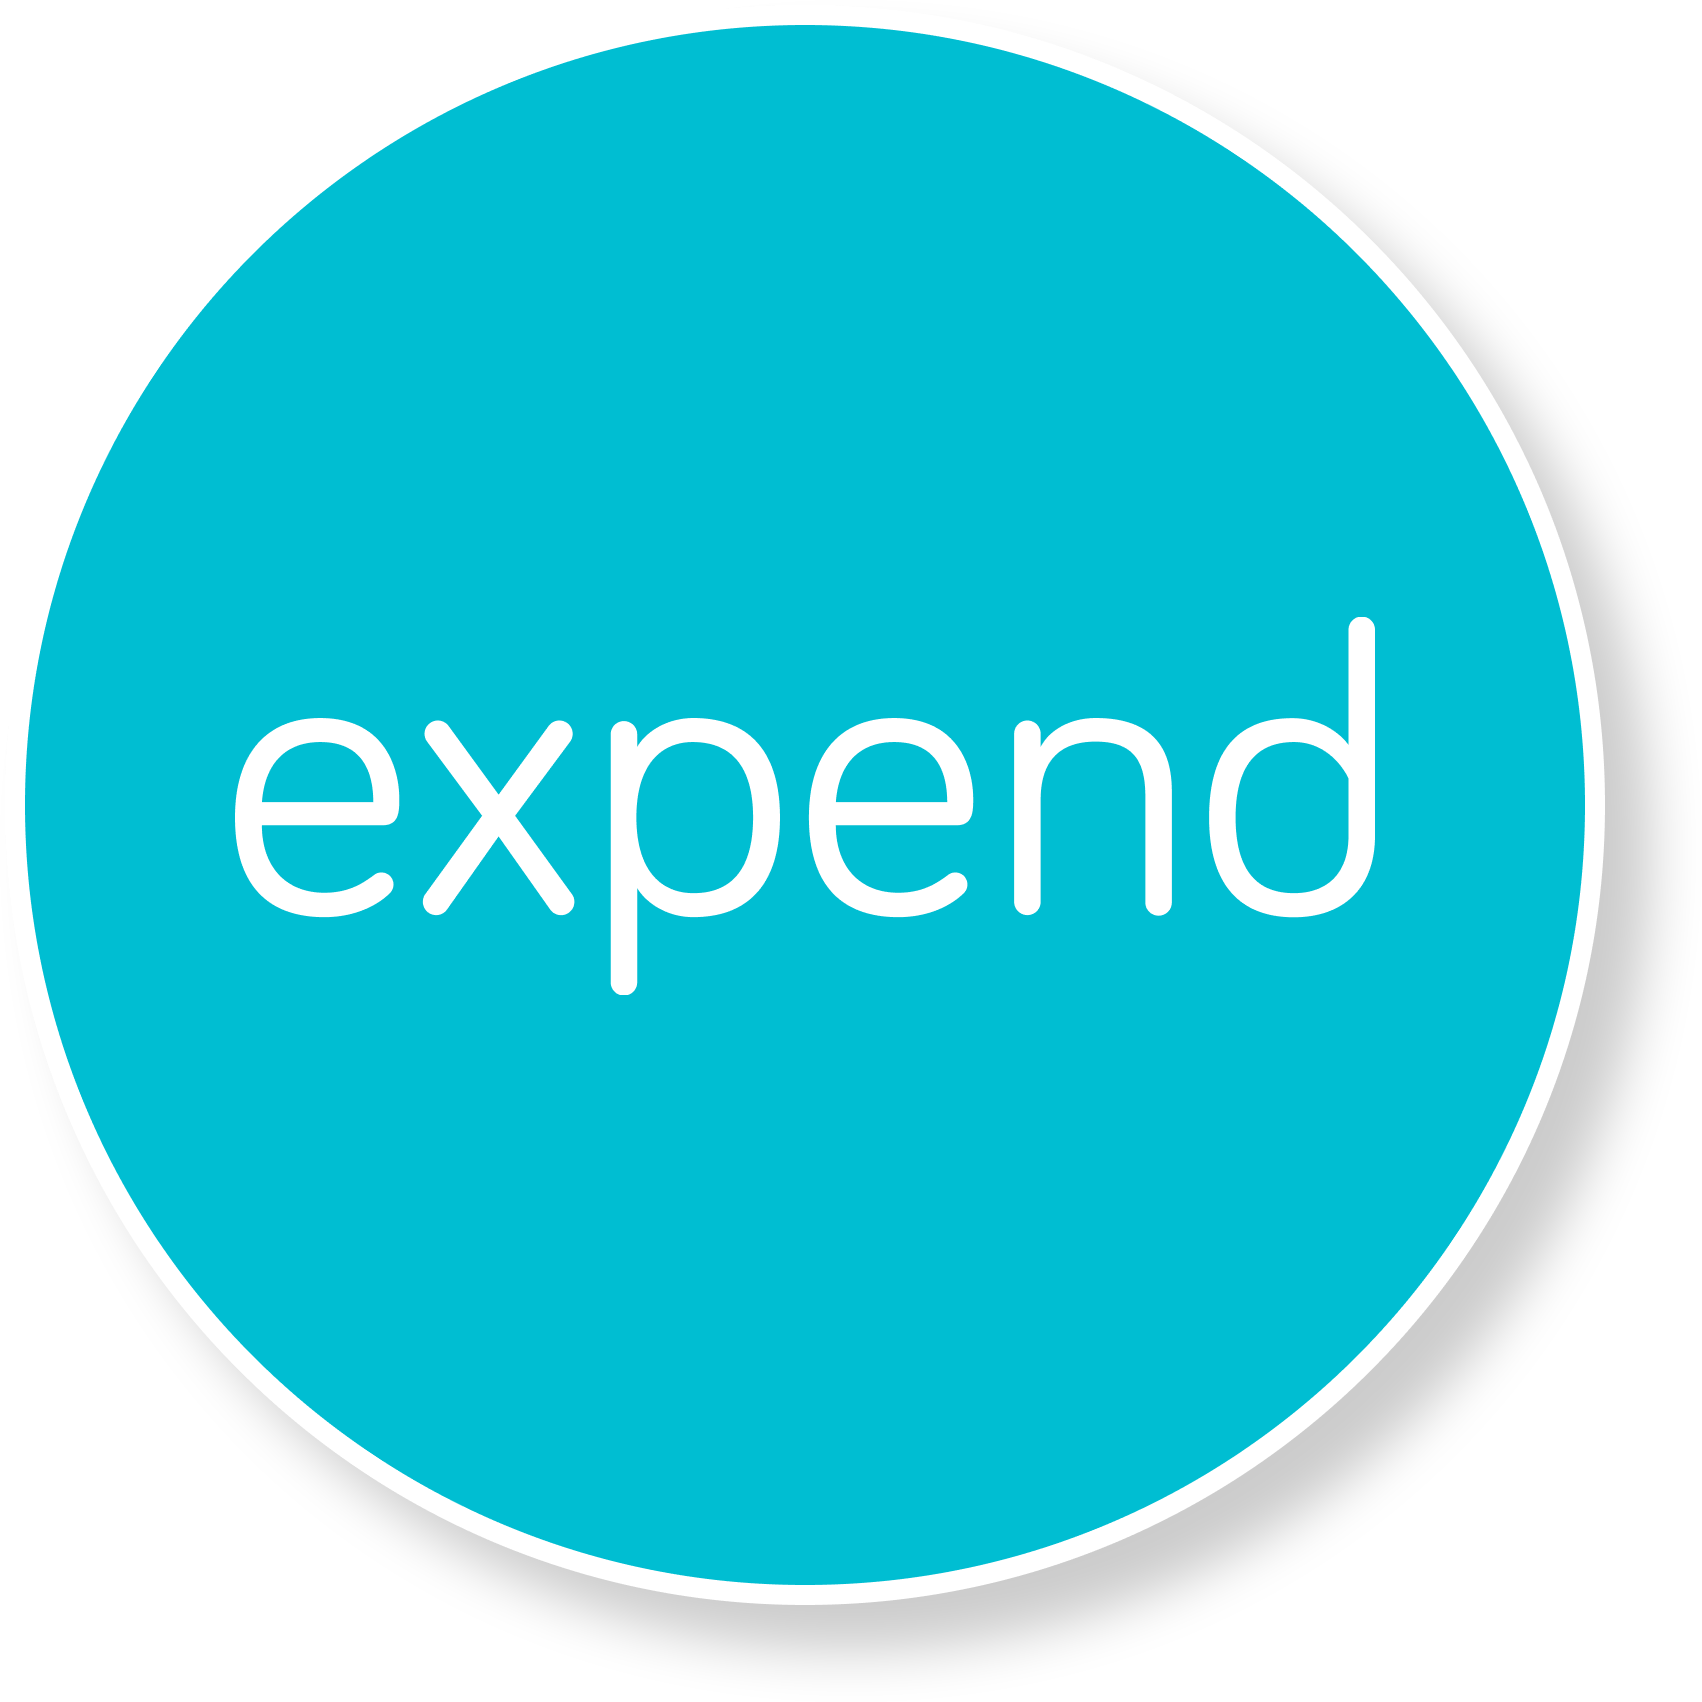 Read Expend Reviews